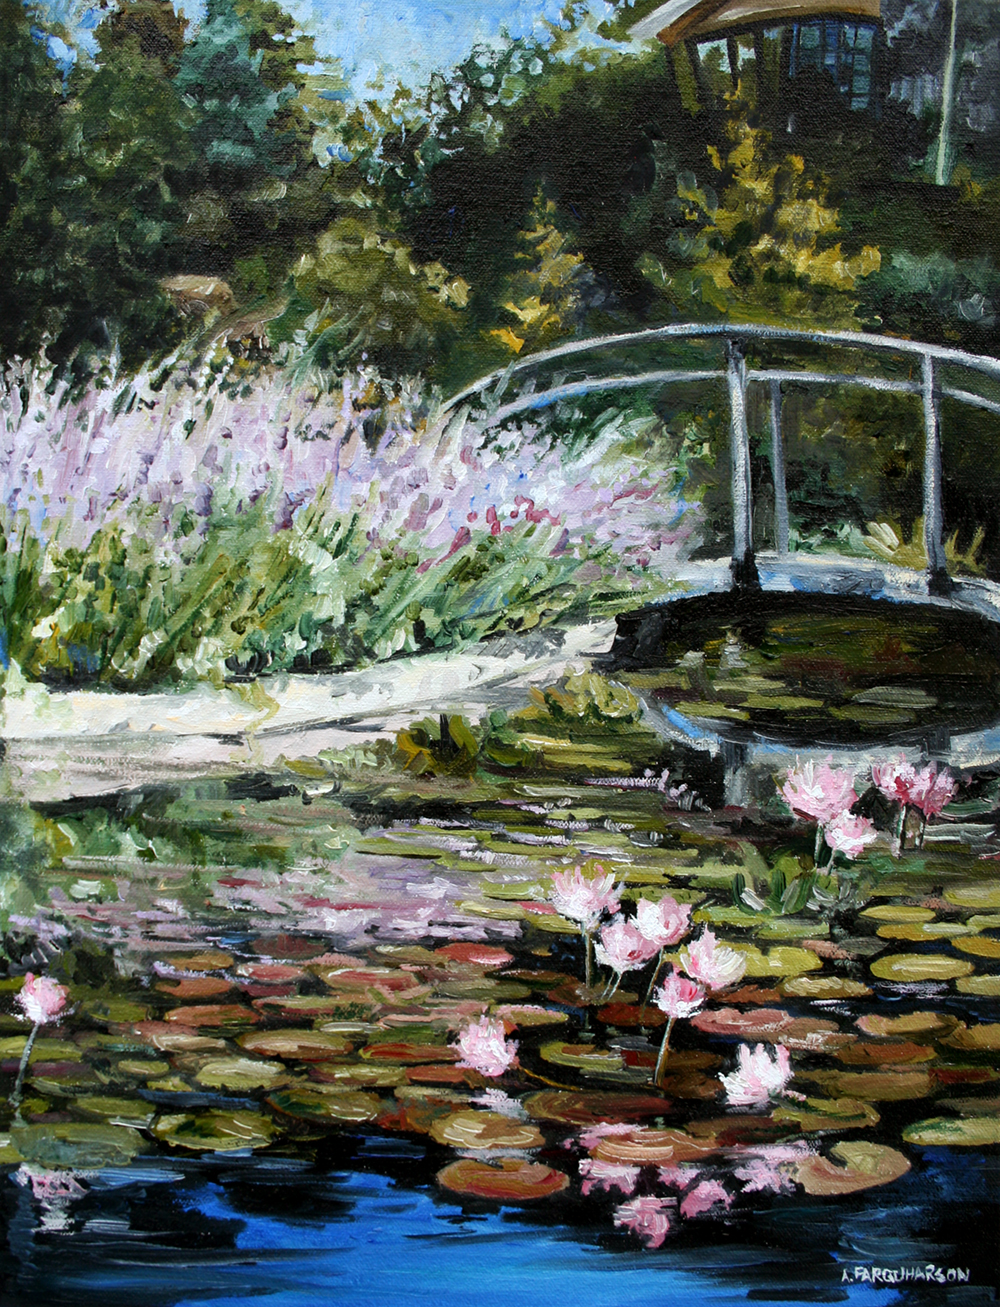 Russian Sage, Water Lilies and Foot Bridge by Amanda Farquharson 12 x 16 inches, oil on canvas